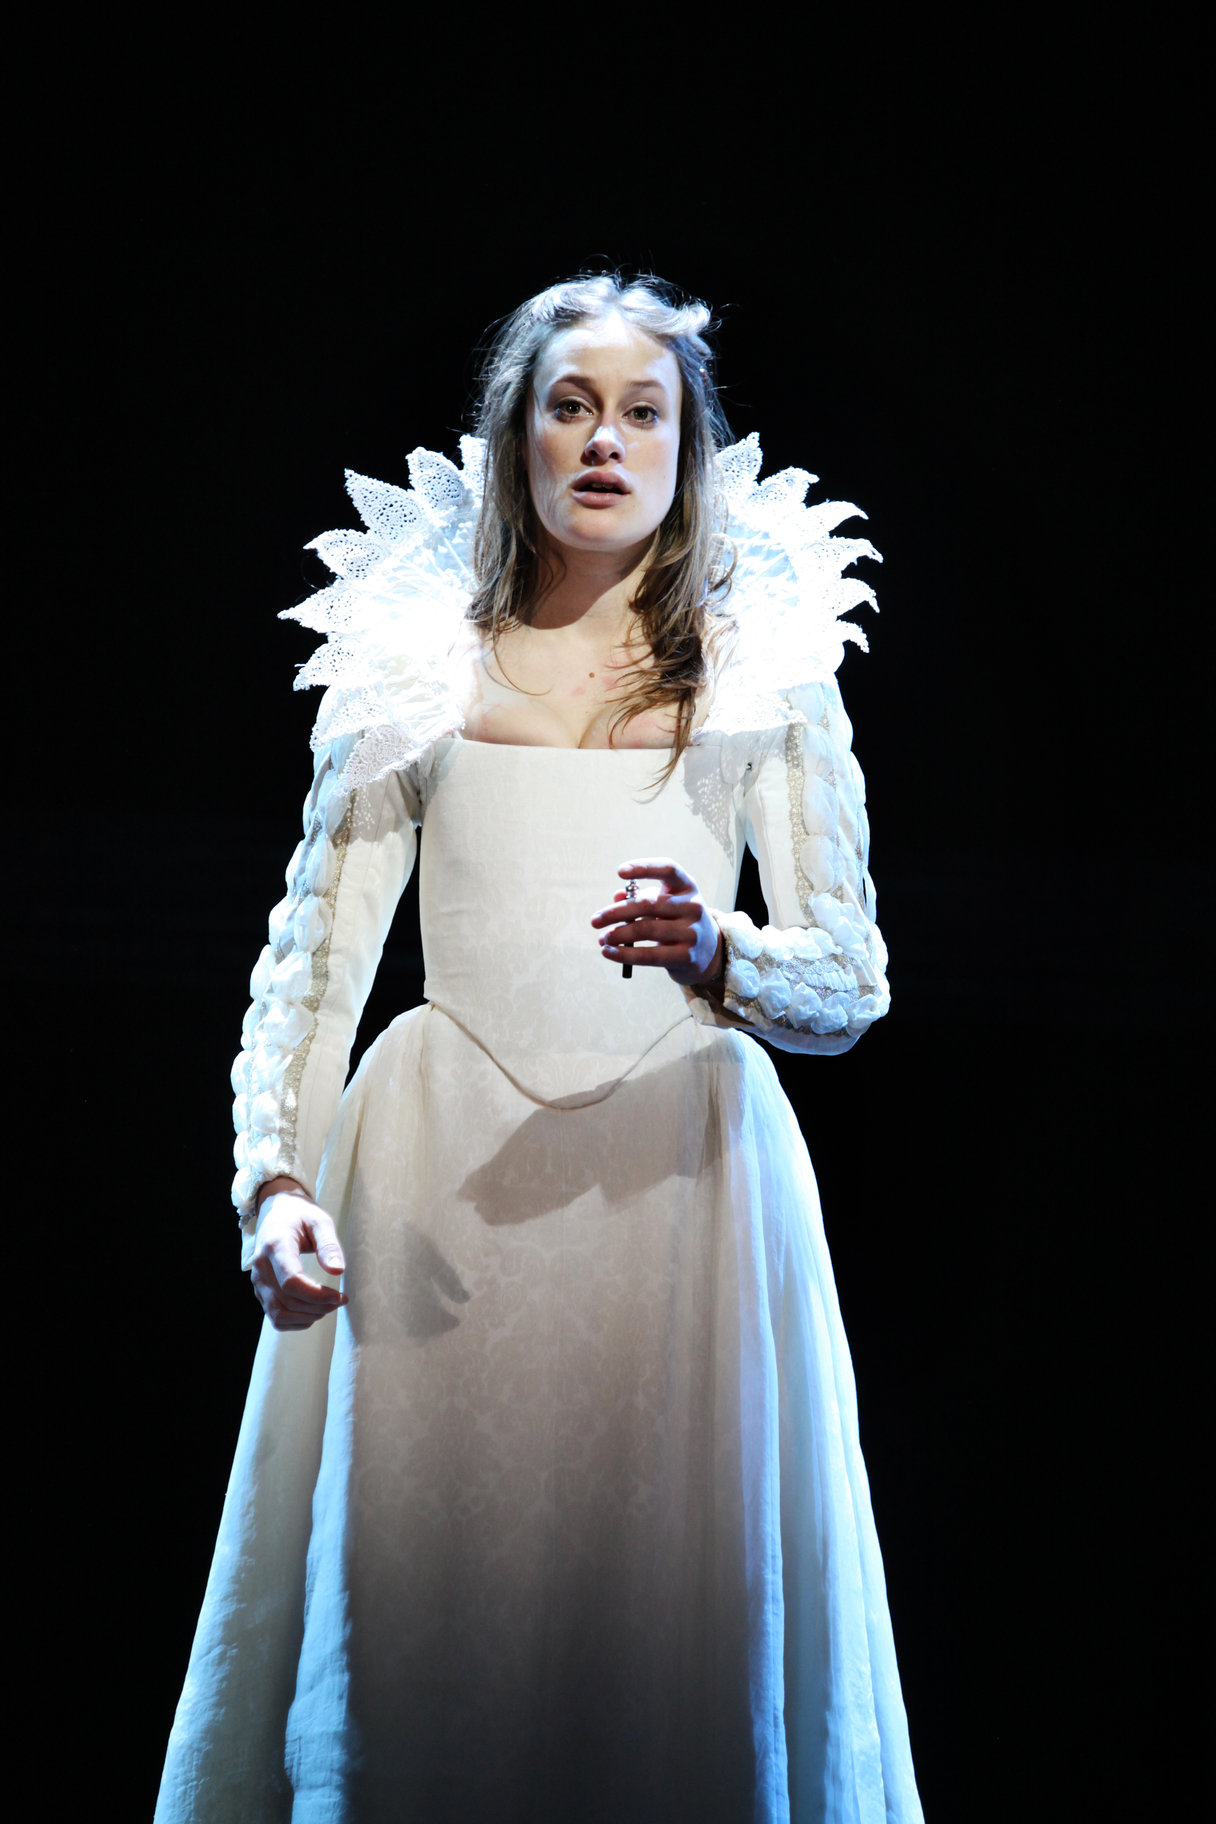 Juliet in an elaborate white gown prepares to drink the poison